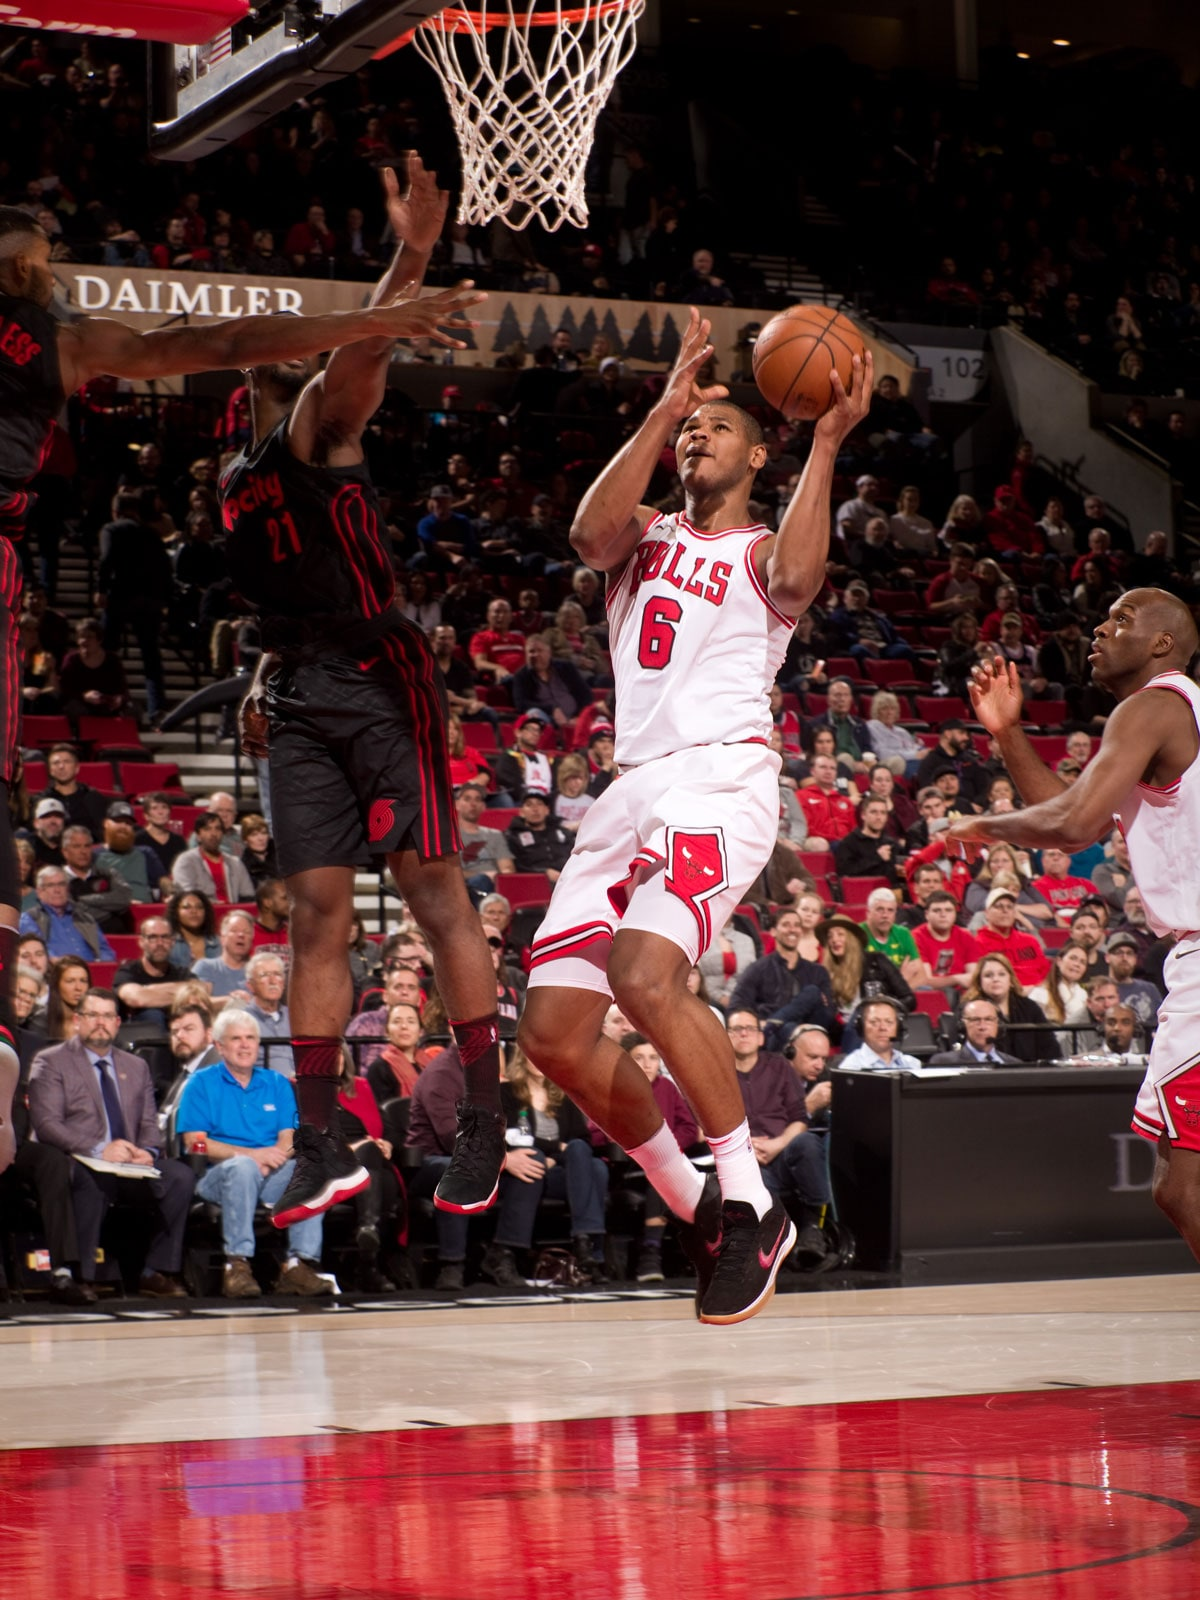 Cristiano Felicio #6 of the Chicago Bulls shoots the ball during the game against the Portland Trail Blazers on January 31, 2018 at the Moda Center Arena in Portland, Oregon.